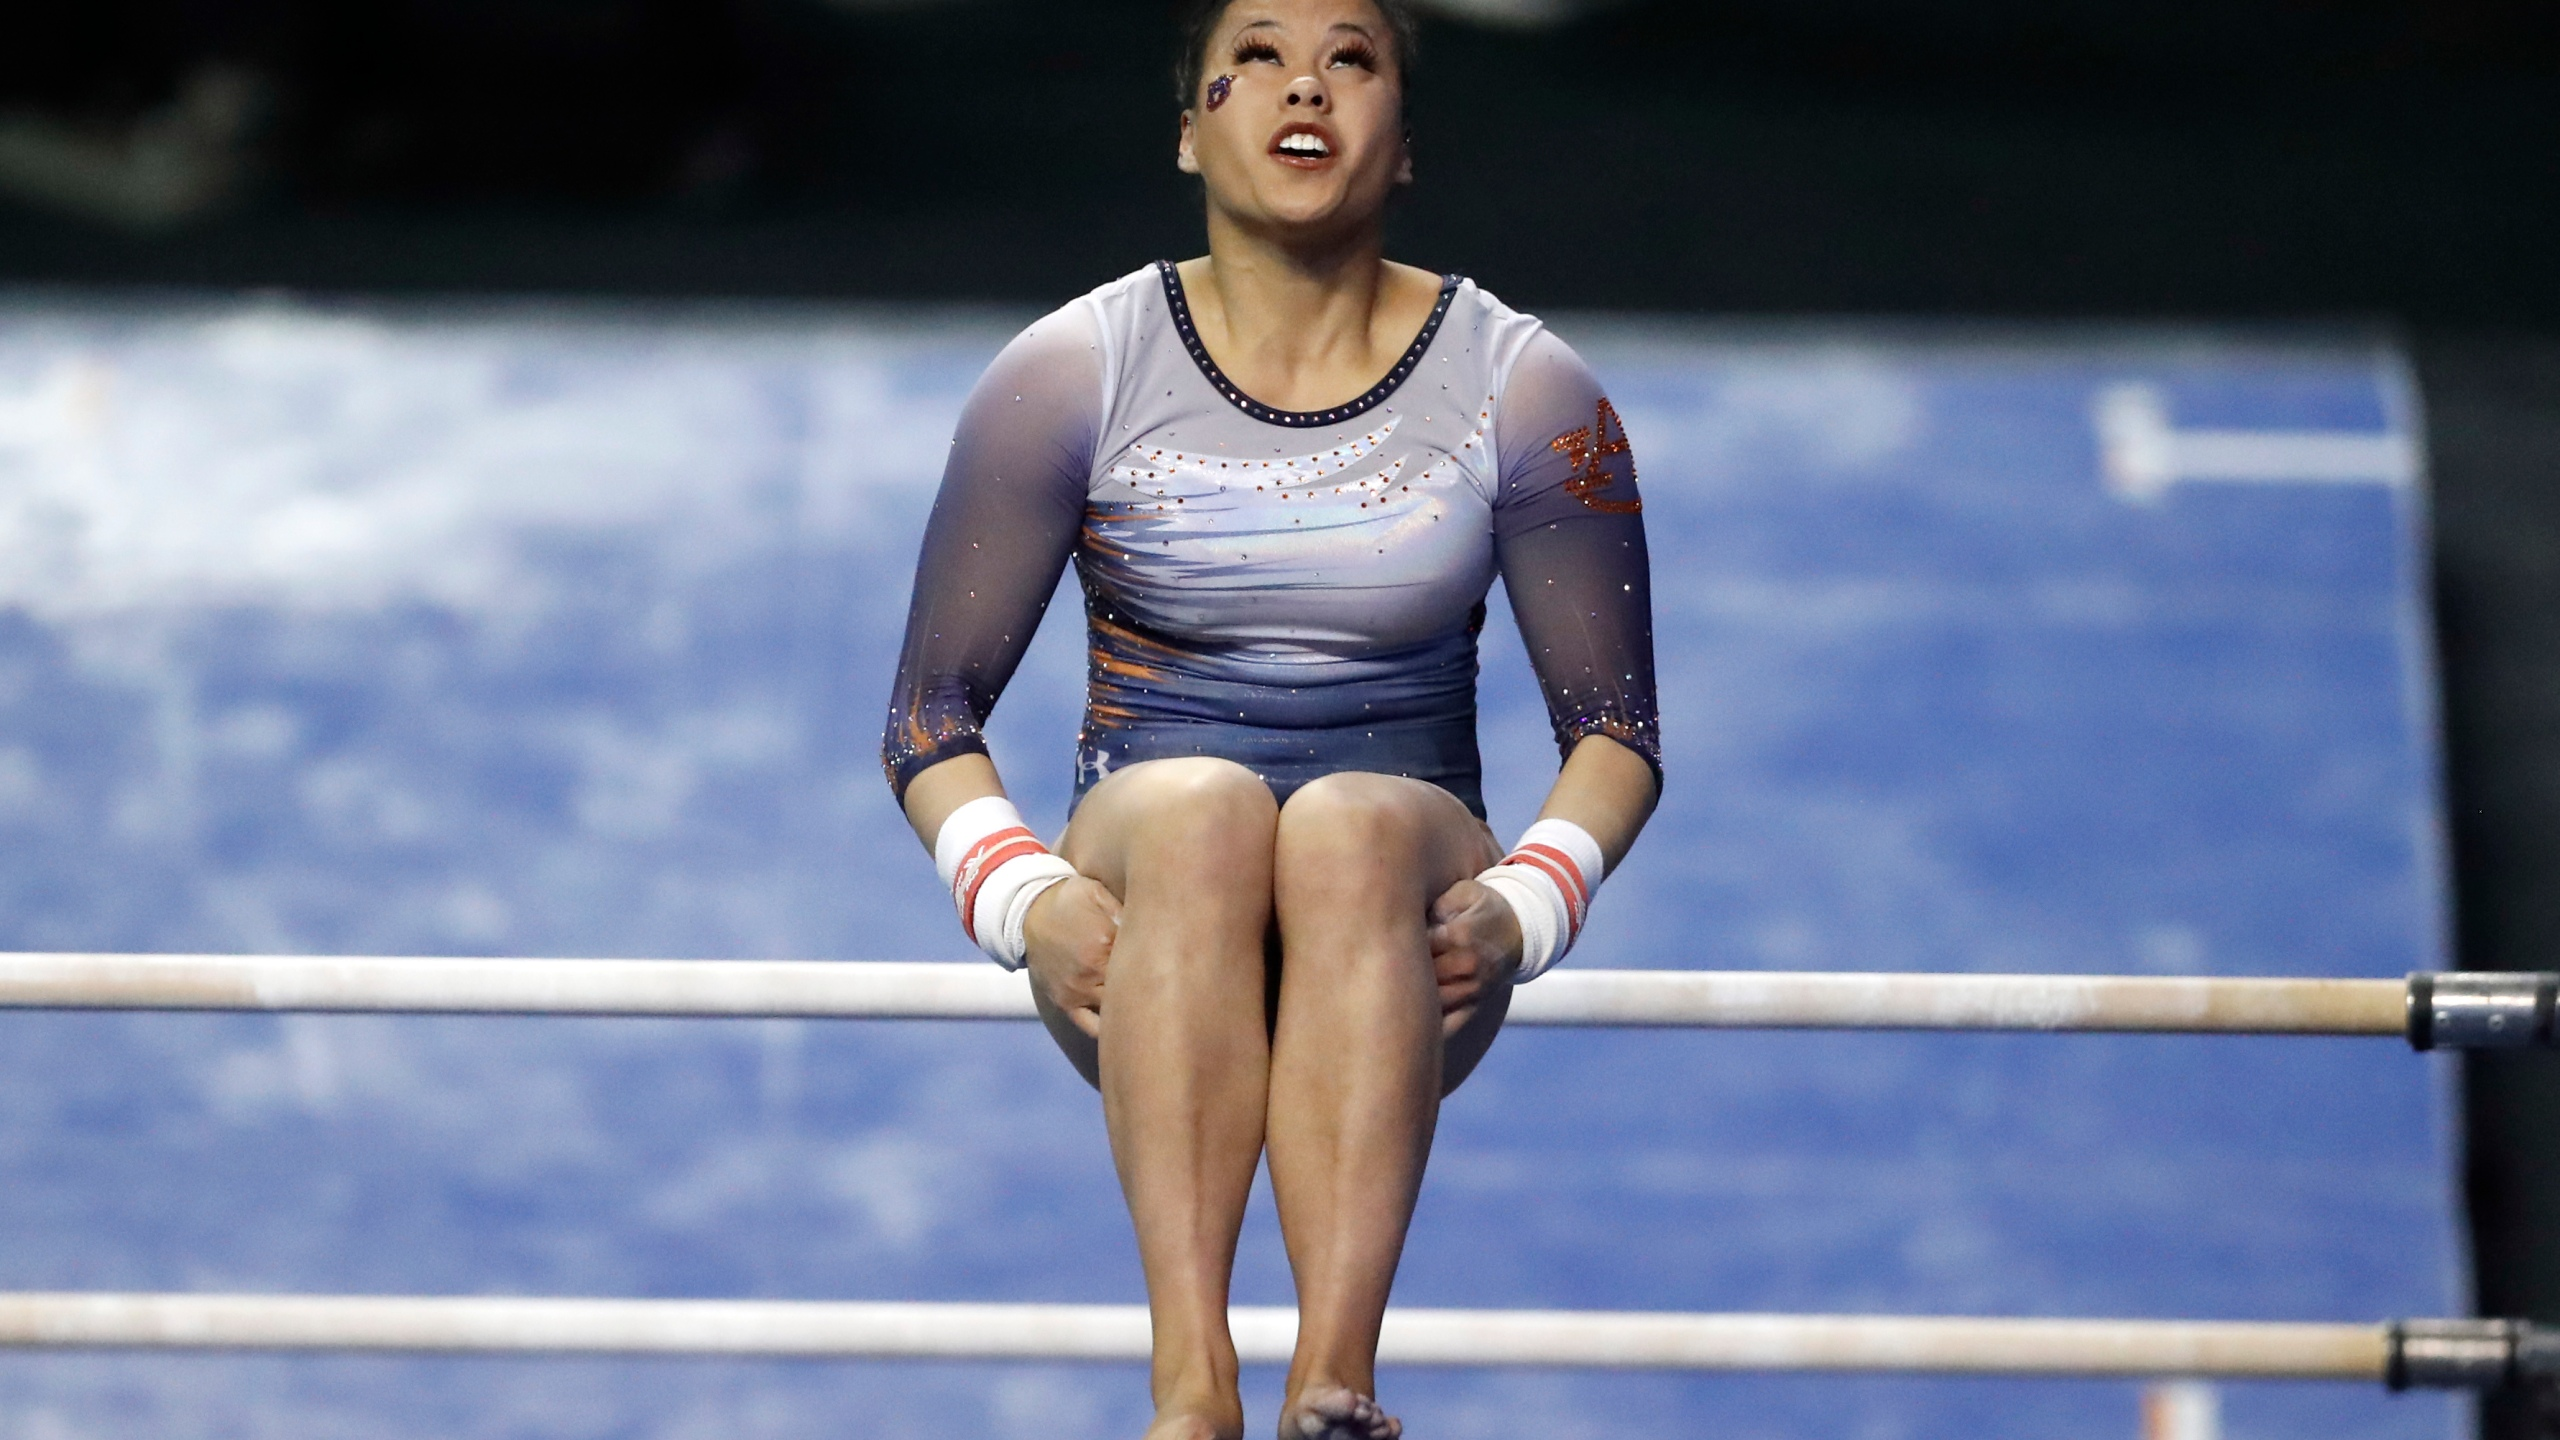 Auburn gymnast injures both legs during